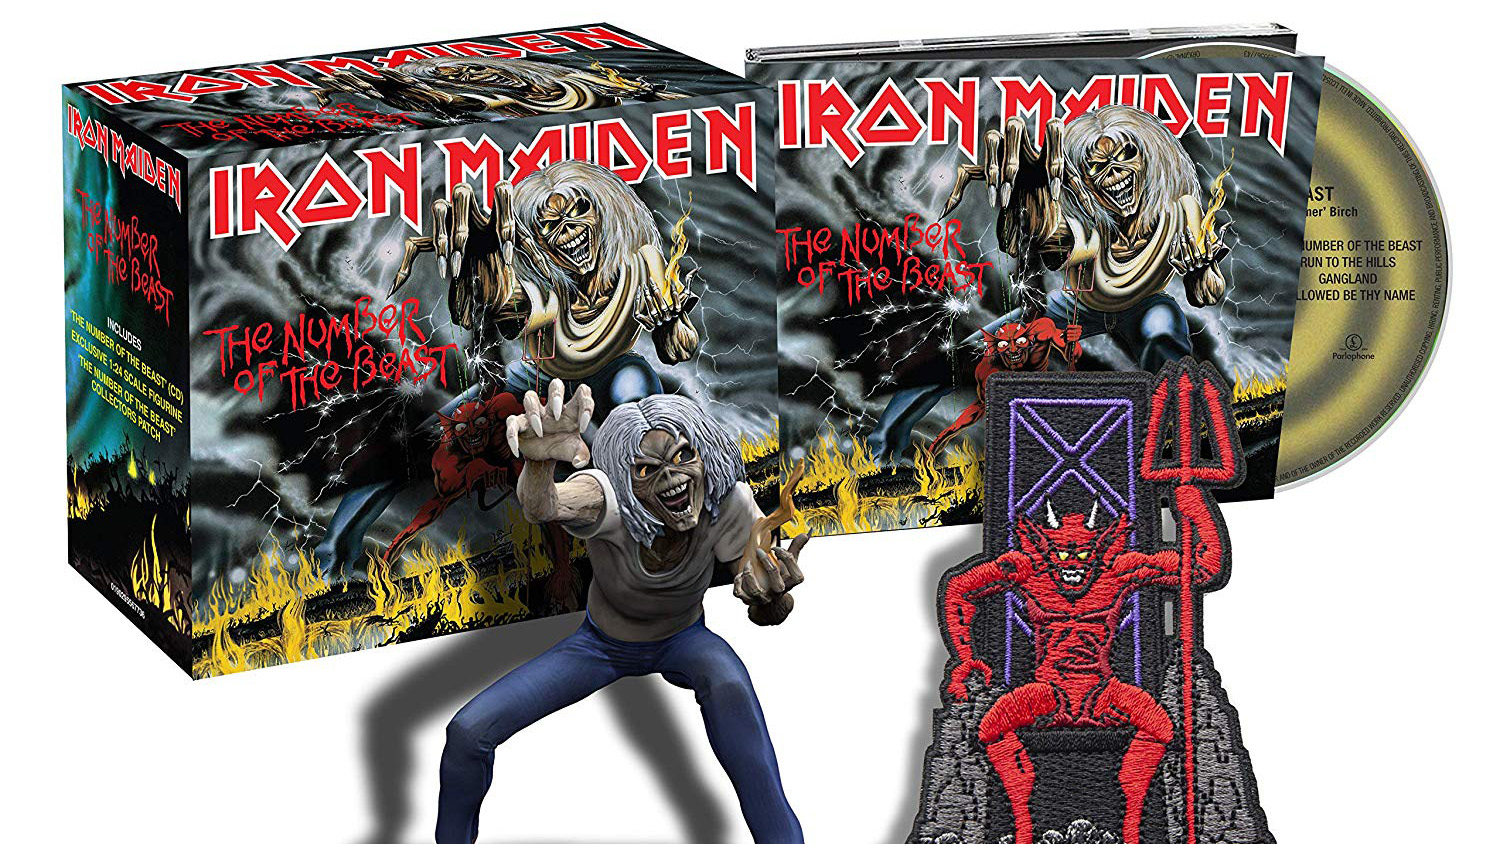 Iron Maiden will revisit their past with new CD series